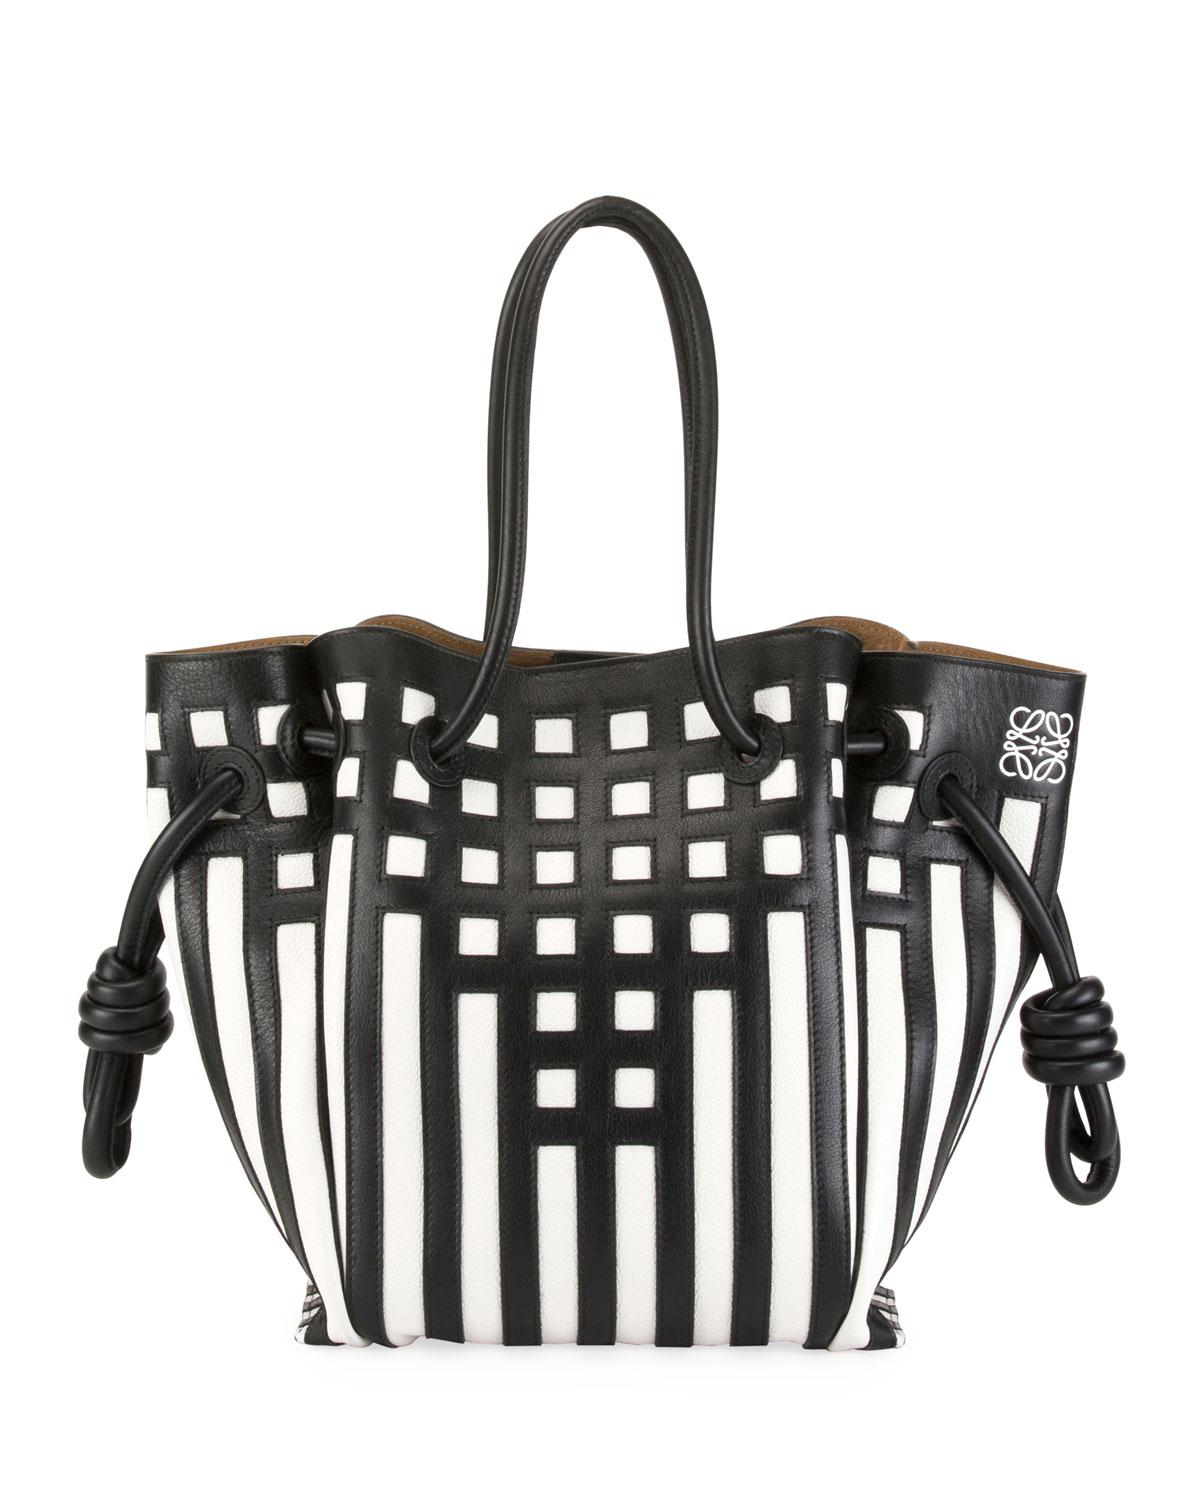 Lyst - Loewe Flamenco Knot Grid Leather Tote Bag in Black - Save 16% 6d6d18f4166b2